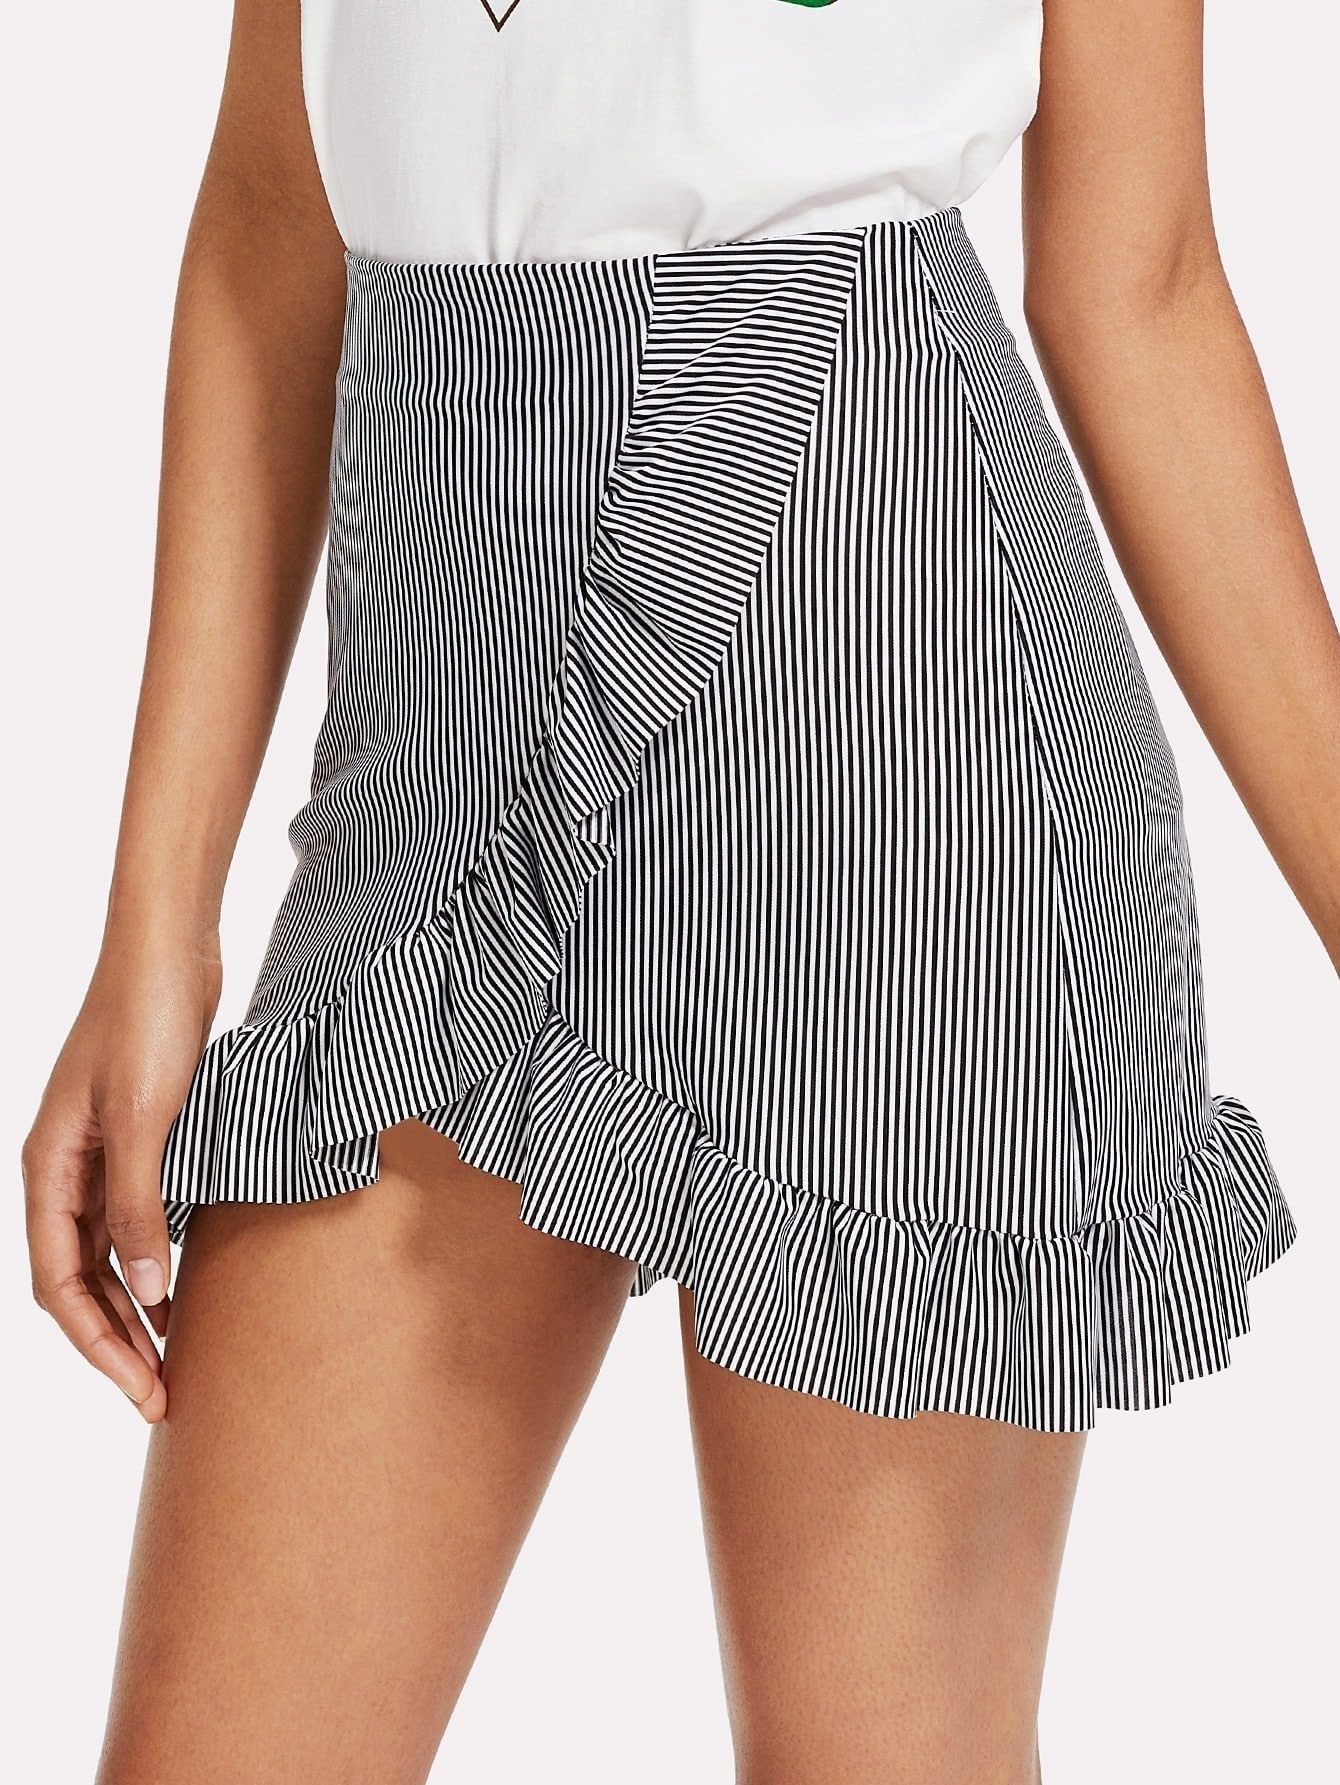 Striped Ruffle Hem Overlap Skirt striped ruffle hem overlap skirt